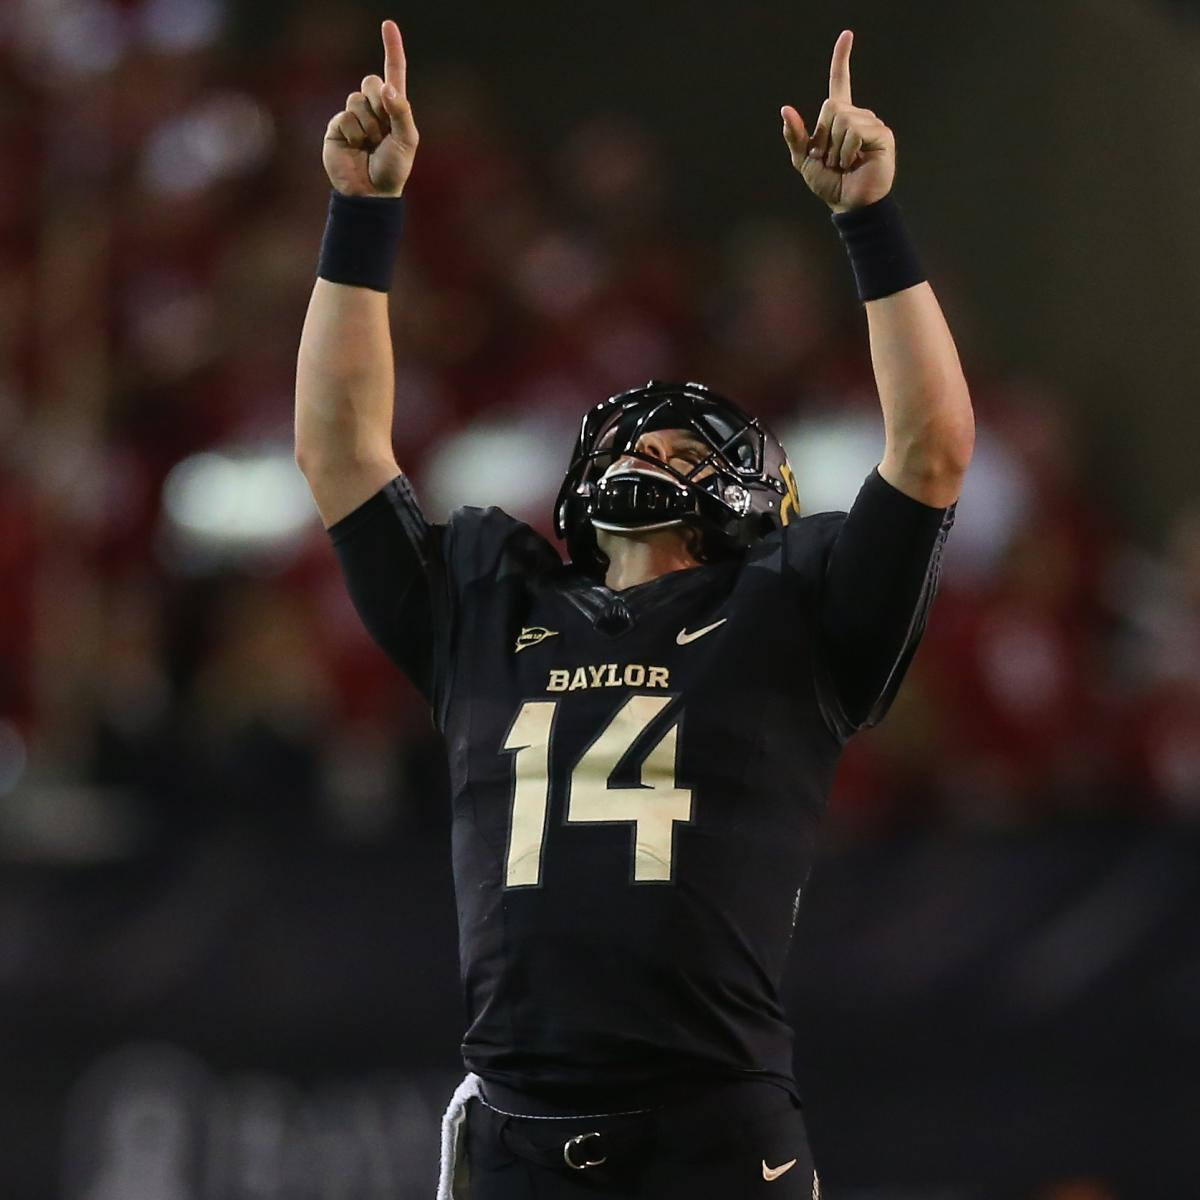 BCS Standings 2013: Complete Top 25 Order Revealed for ...